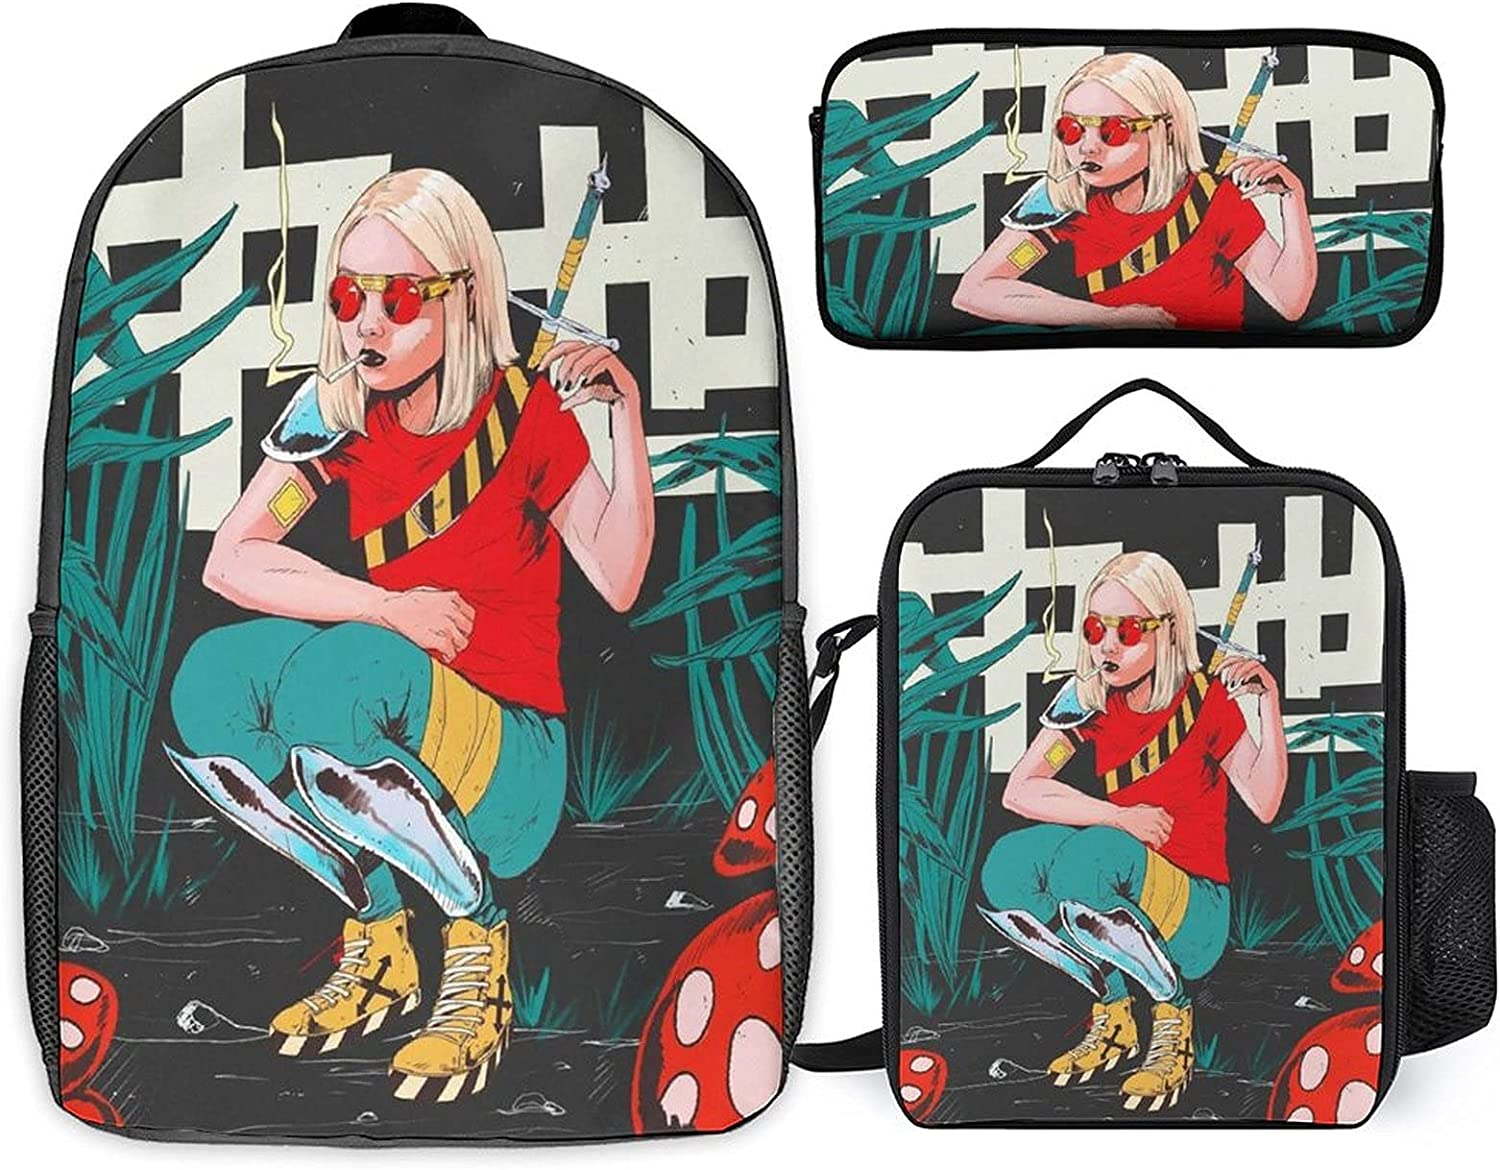 Stoner Art Outlet sale feature Three-piece set of st 67% OFF of fixed price + schoolbag student